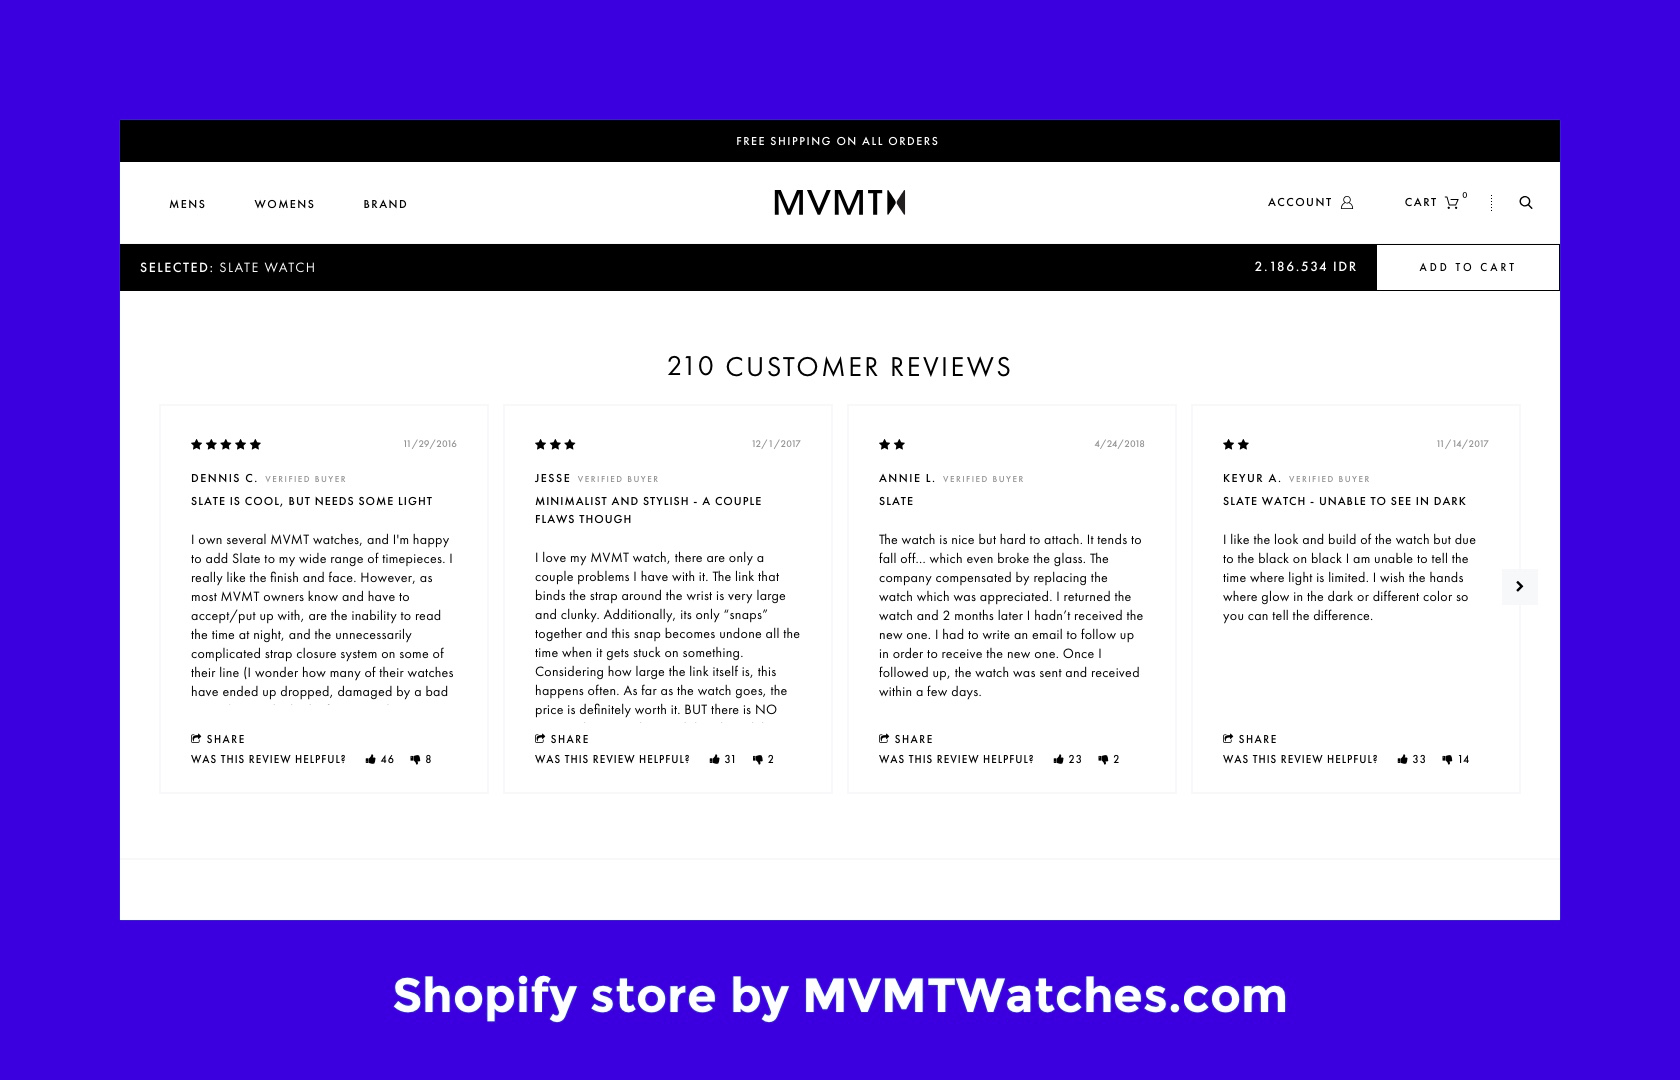 A Shopify store utilizing product reviews as part of Shopify best practices.